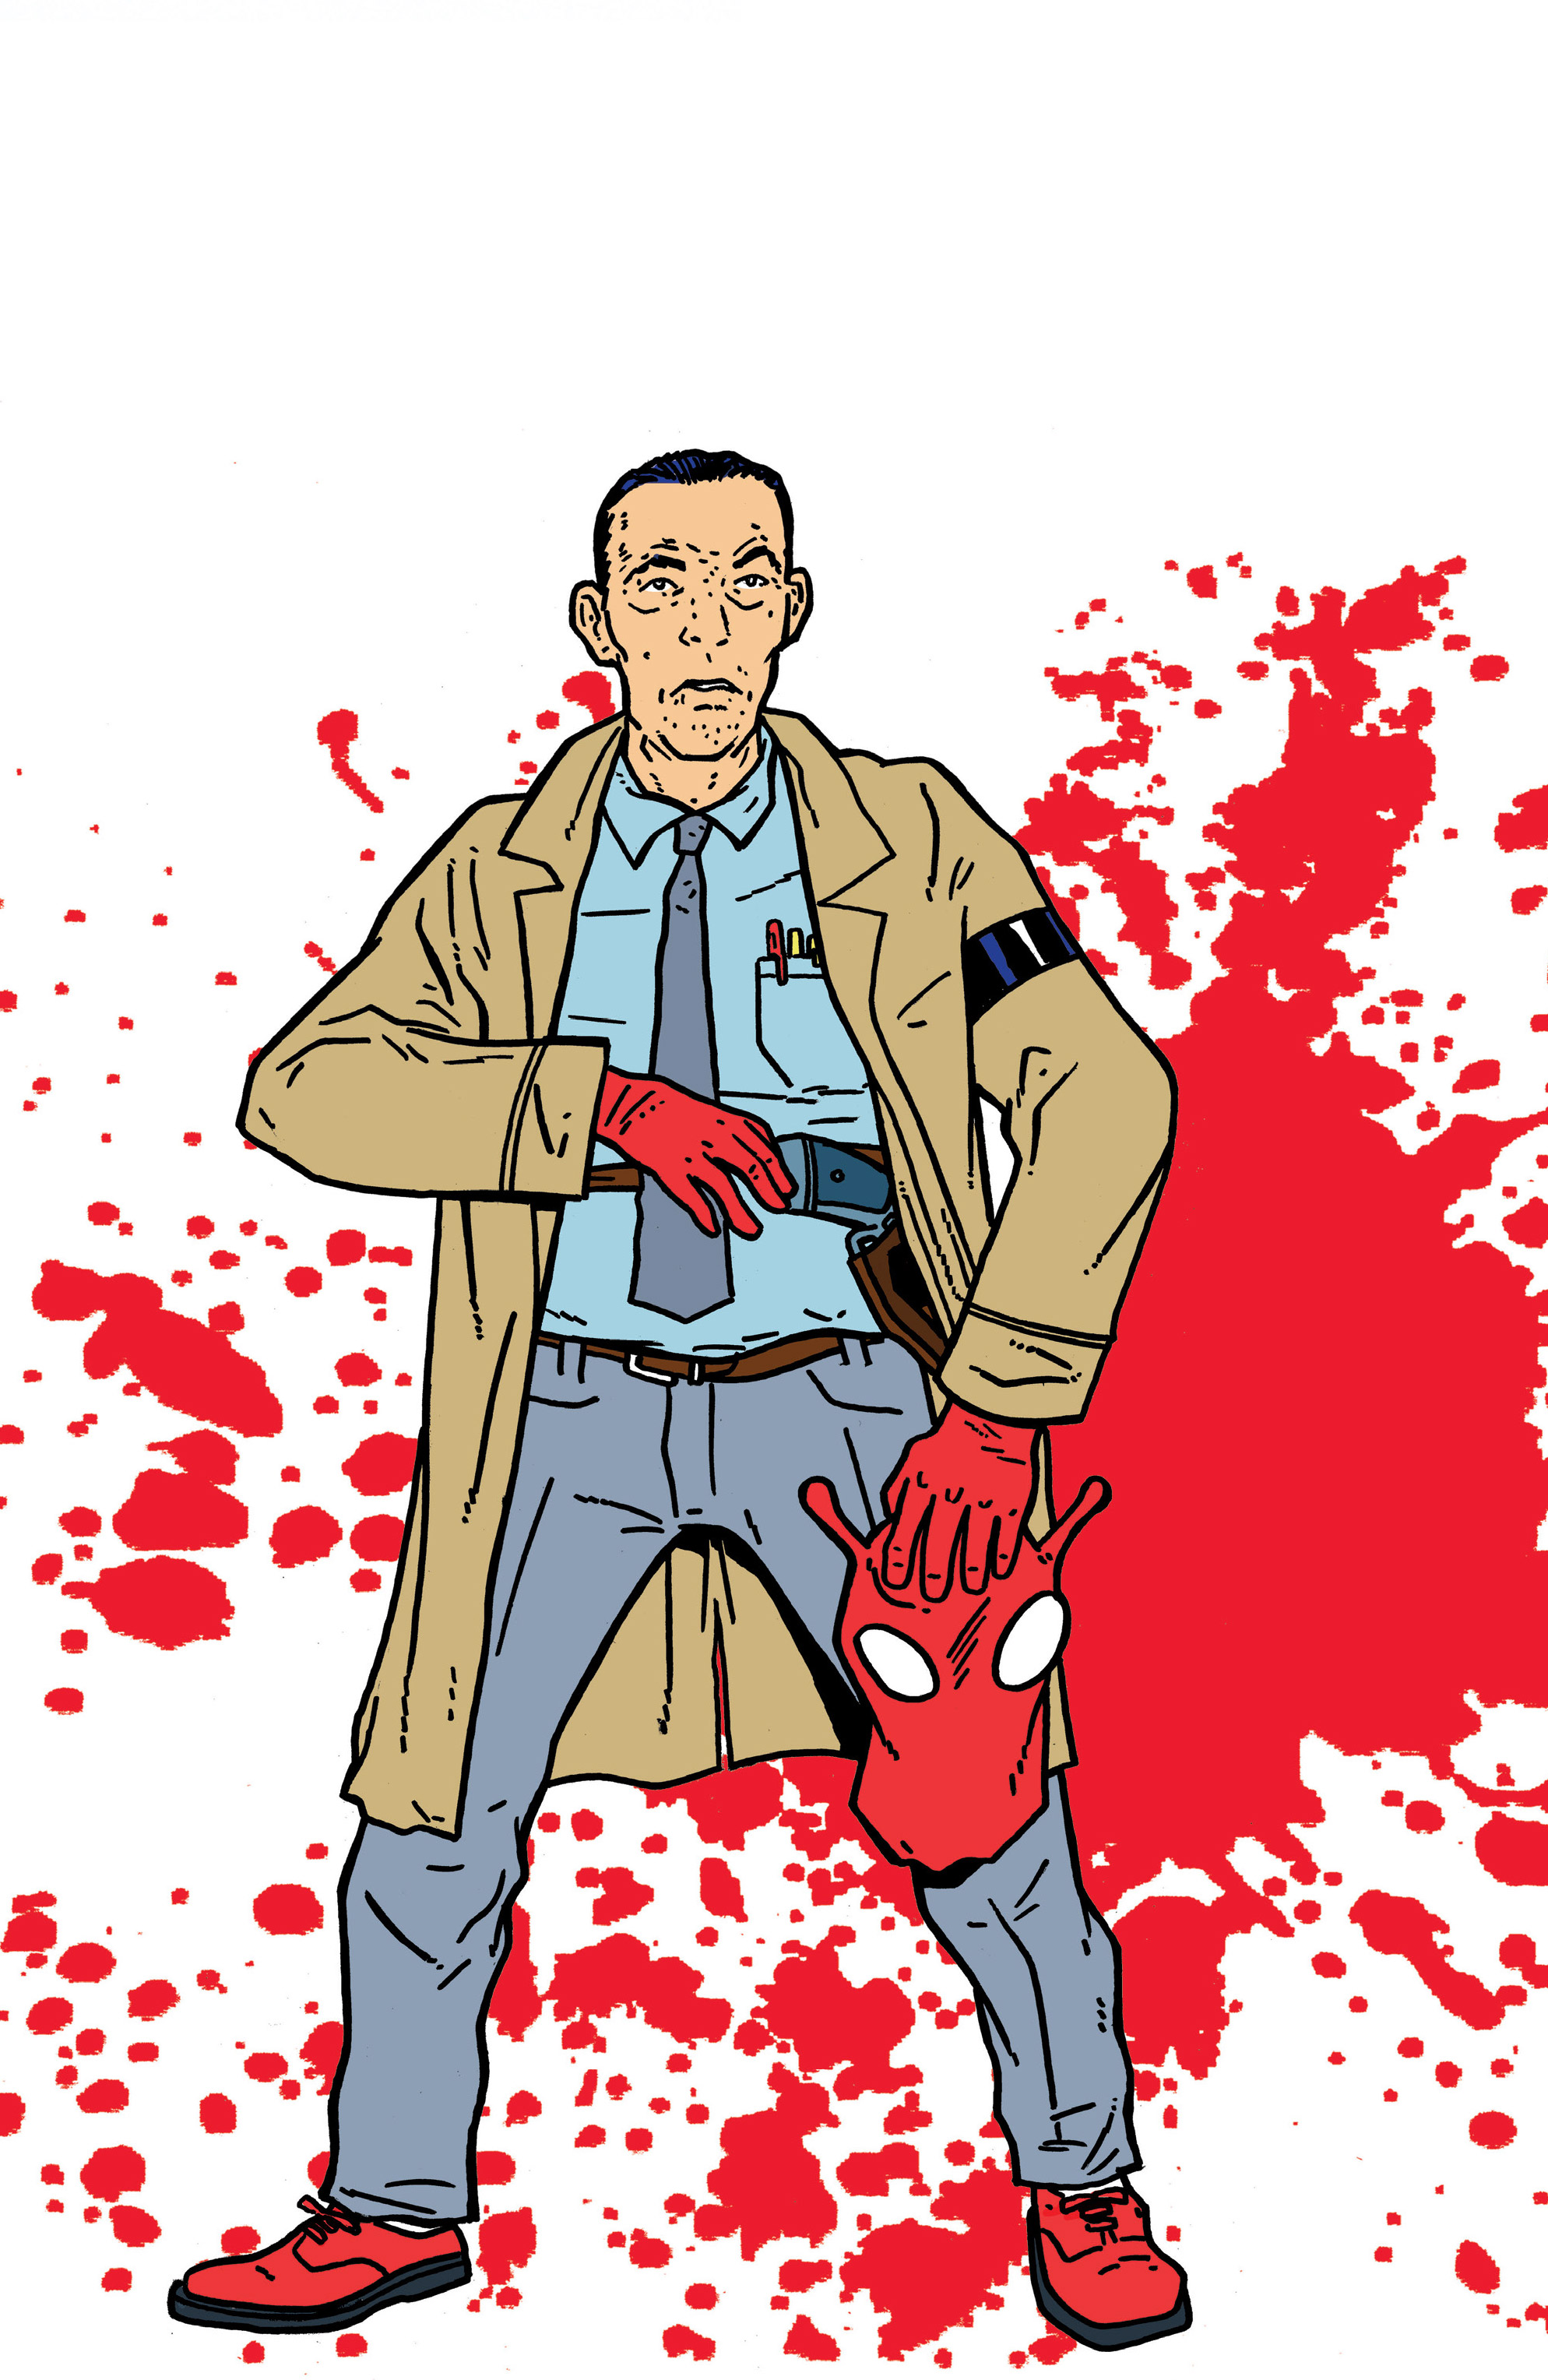 Read online Bulletproof Coffin: The Thousand Yard Stare comic -  Issue # Full - 31